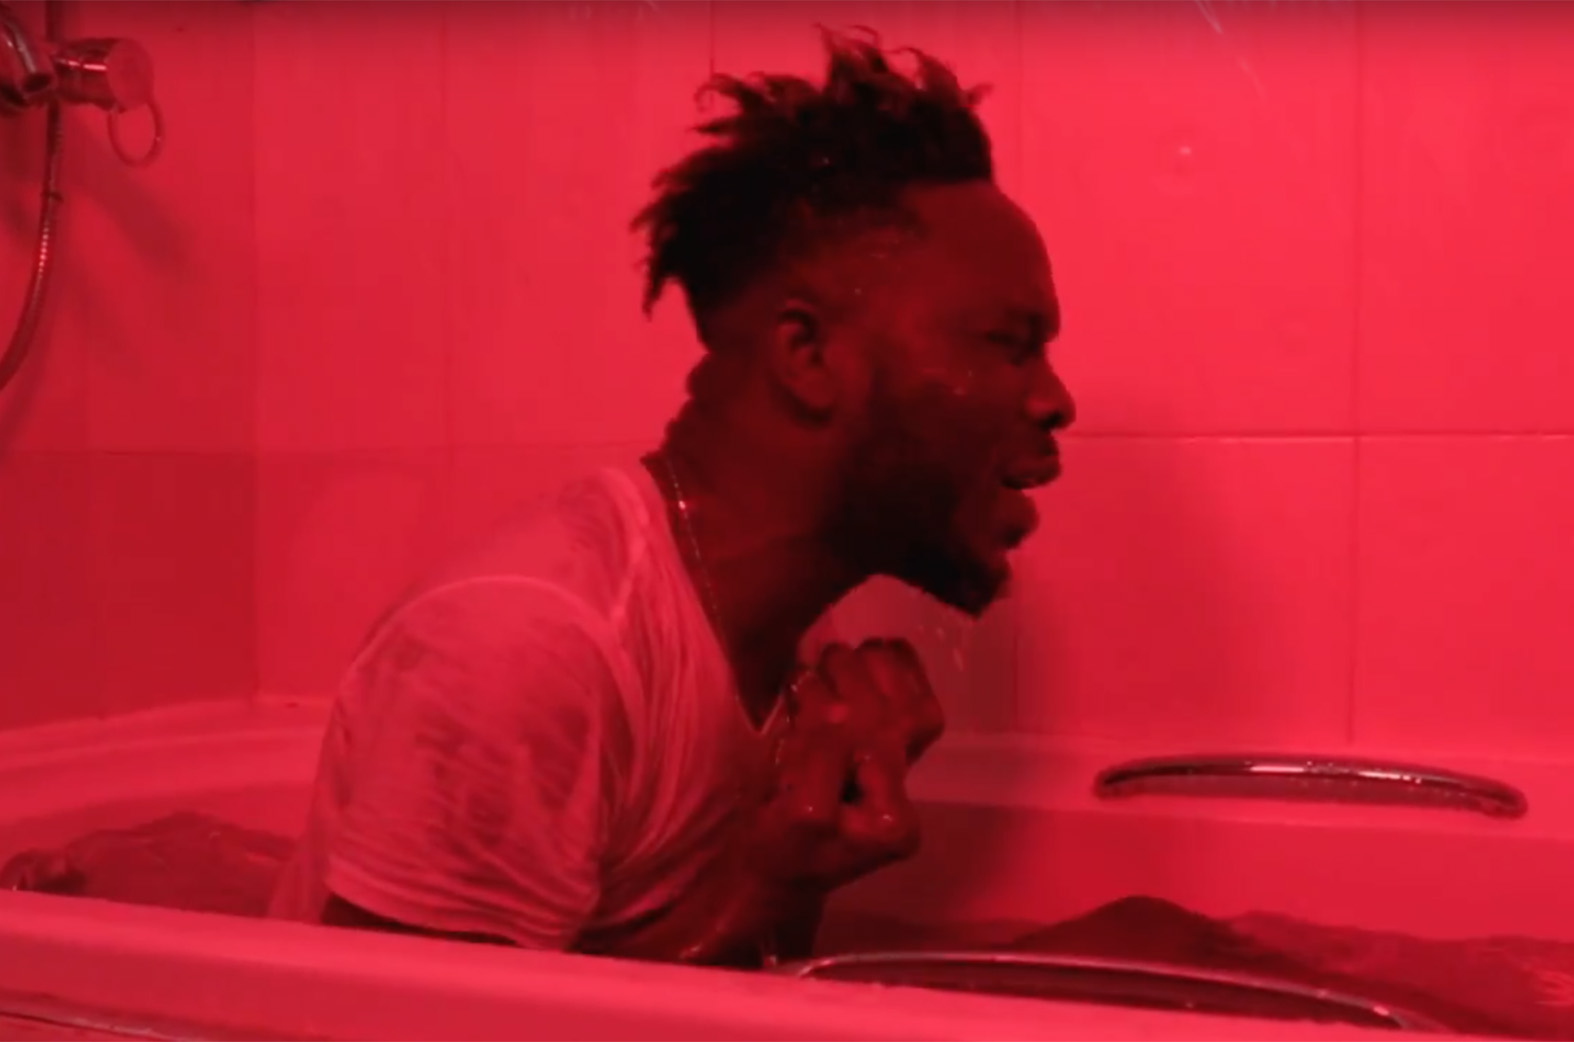 Video: Remember Love by Dayz Morgan feat. Cabum